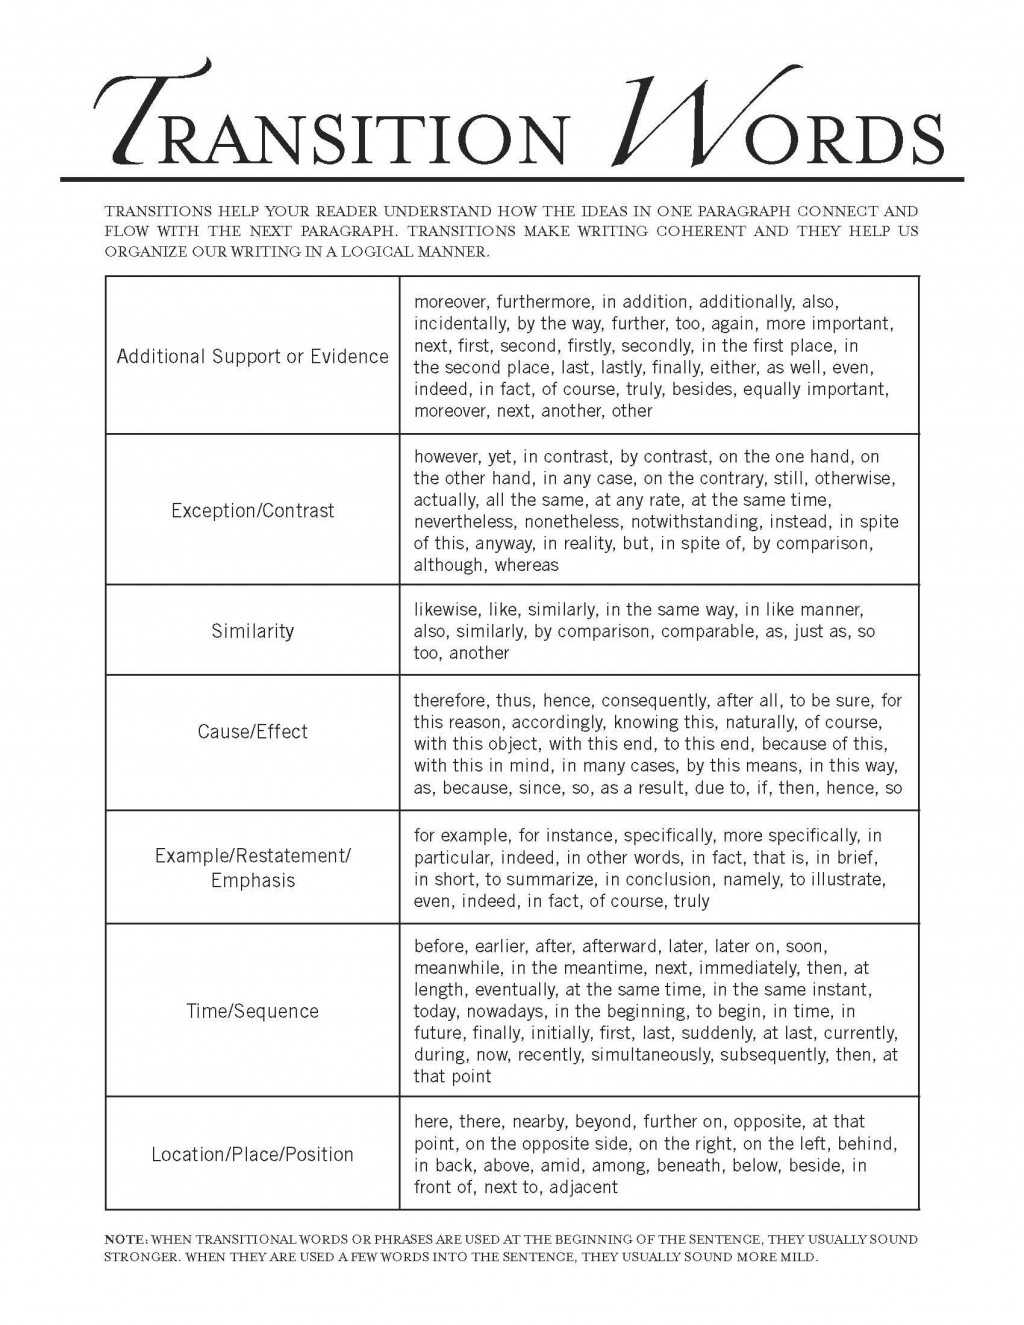 002 Essay Example Good Transition Words For Formidable Essays In College Expository Large